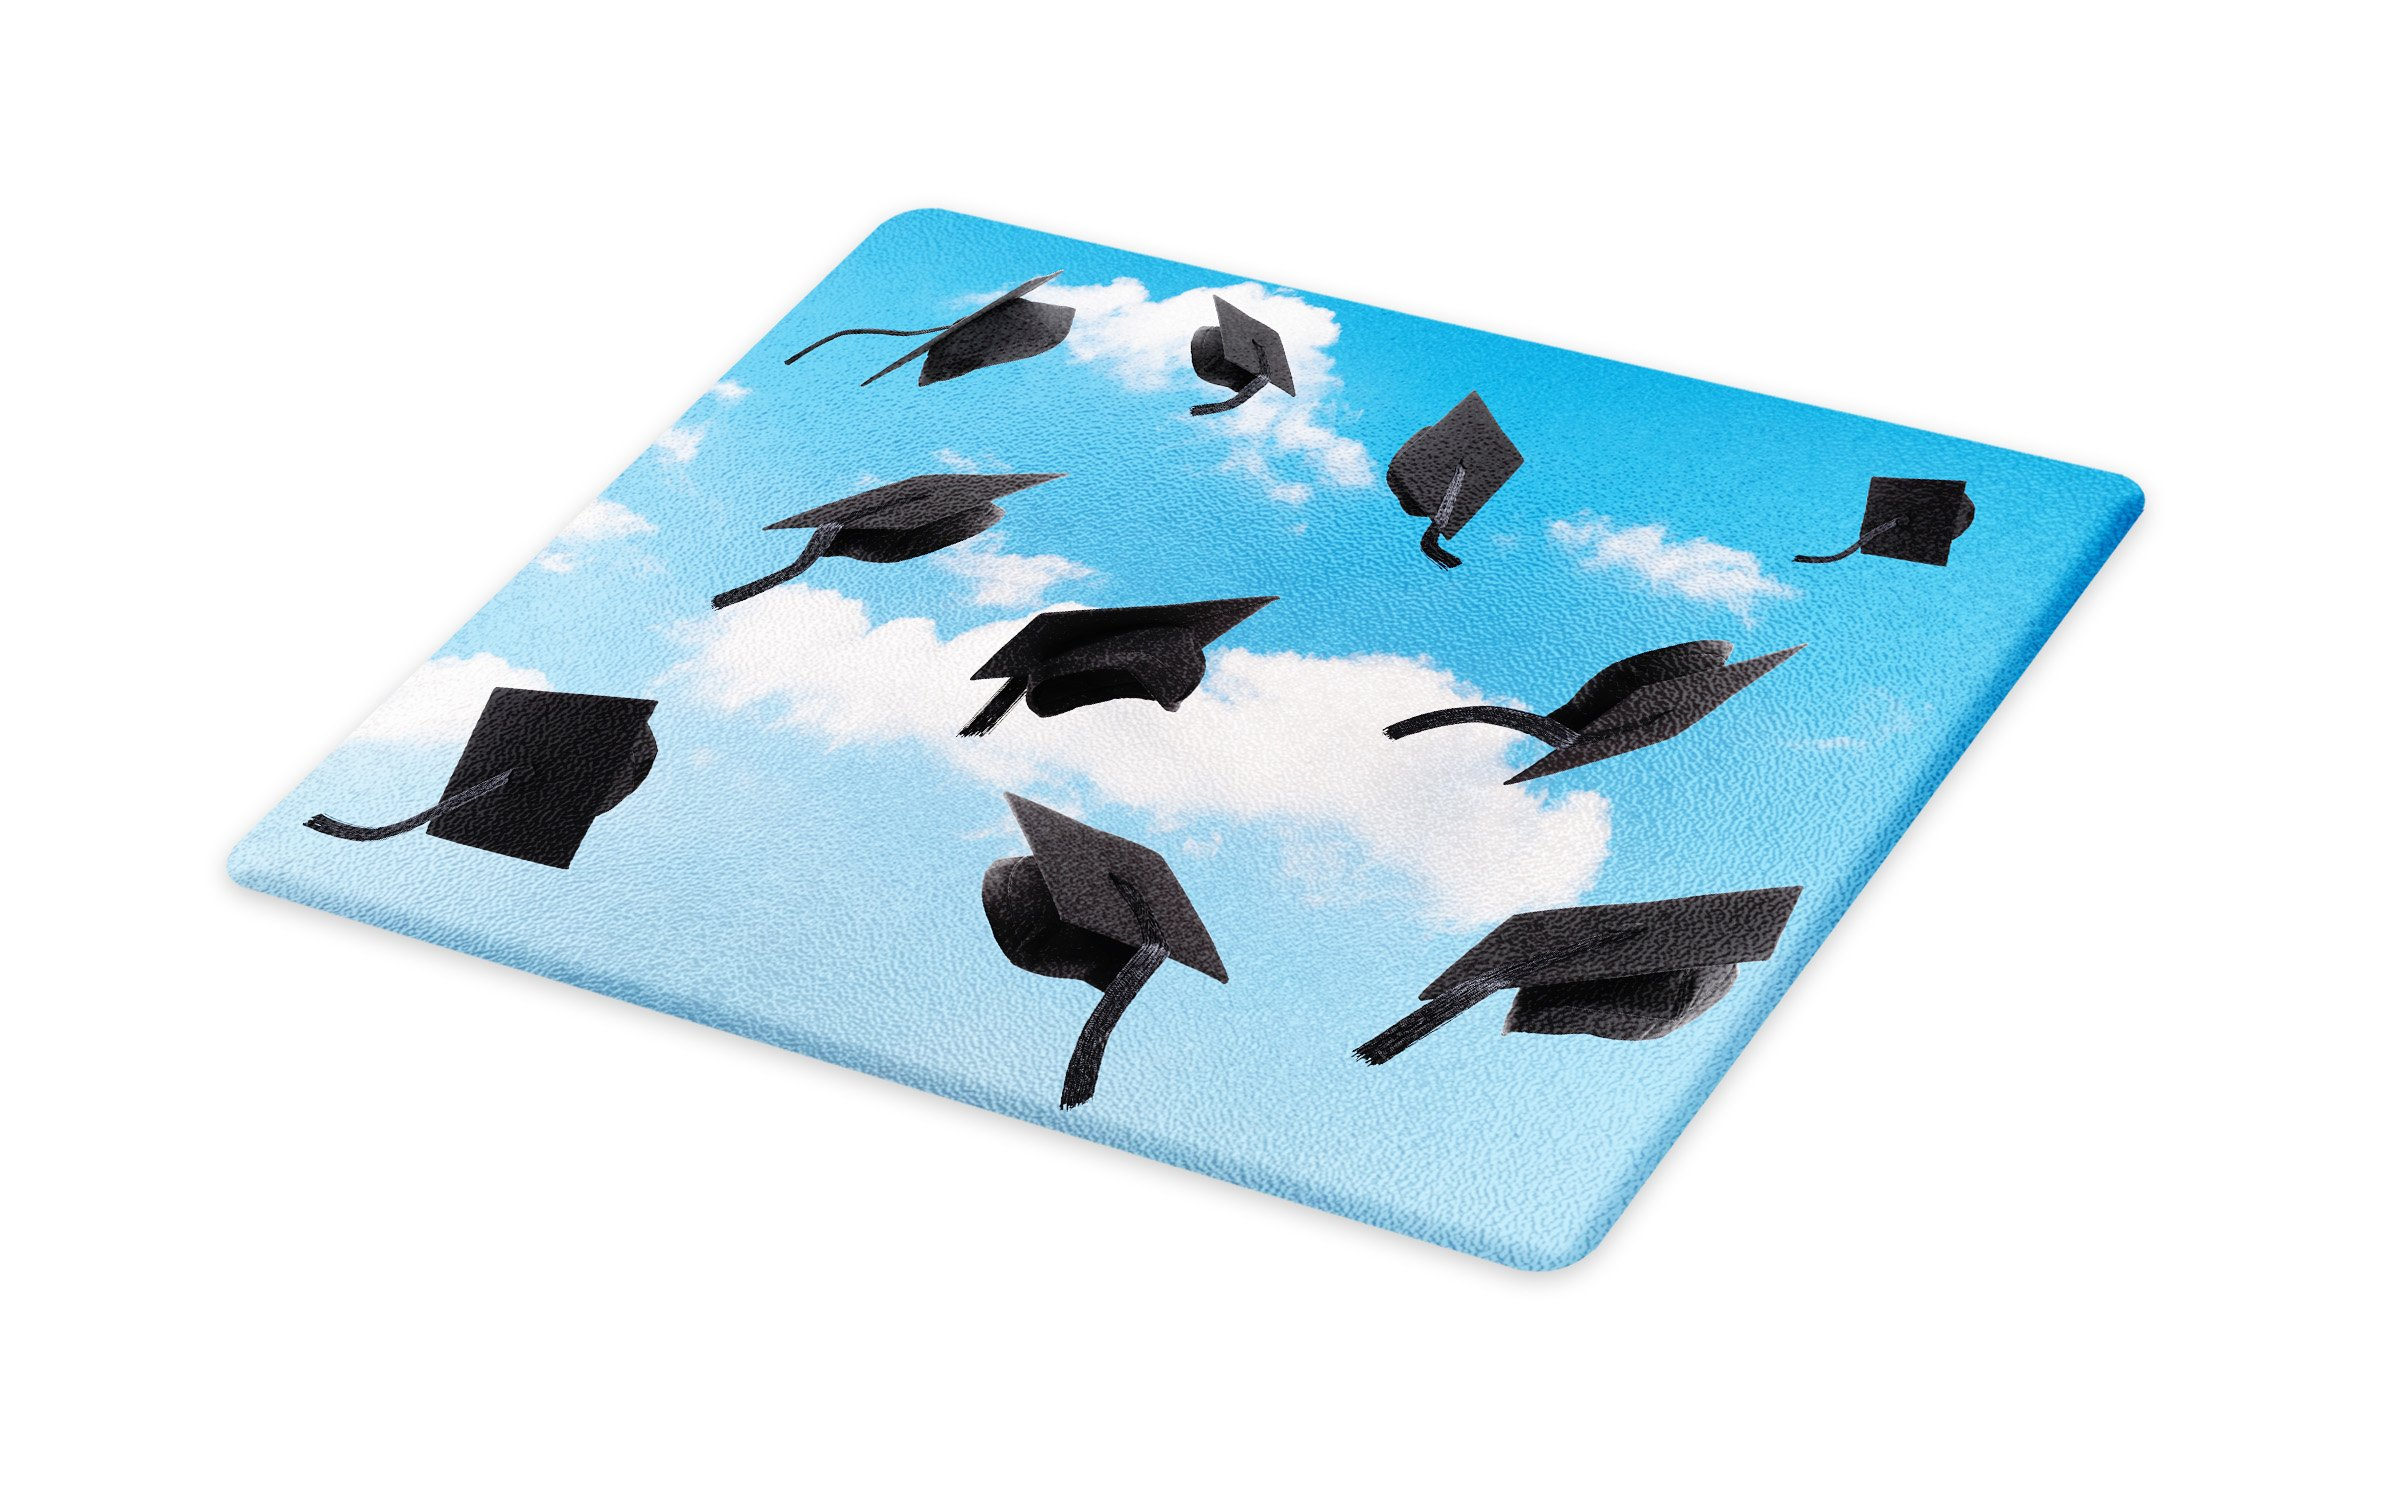 Lunarable Graduation Cutting Board, Caps Thrown into Sky Last of The School Highschool College Ceremony Picture, Decorative Tempered Glass Cutting and Serving Board, Small Size, Blue Black